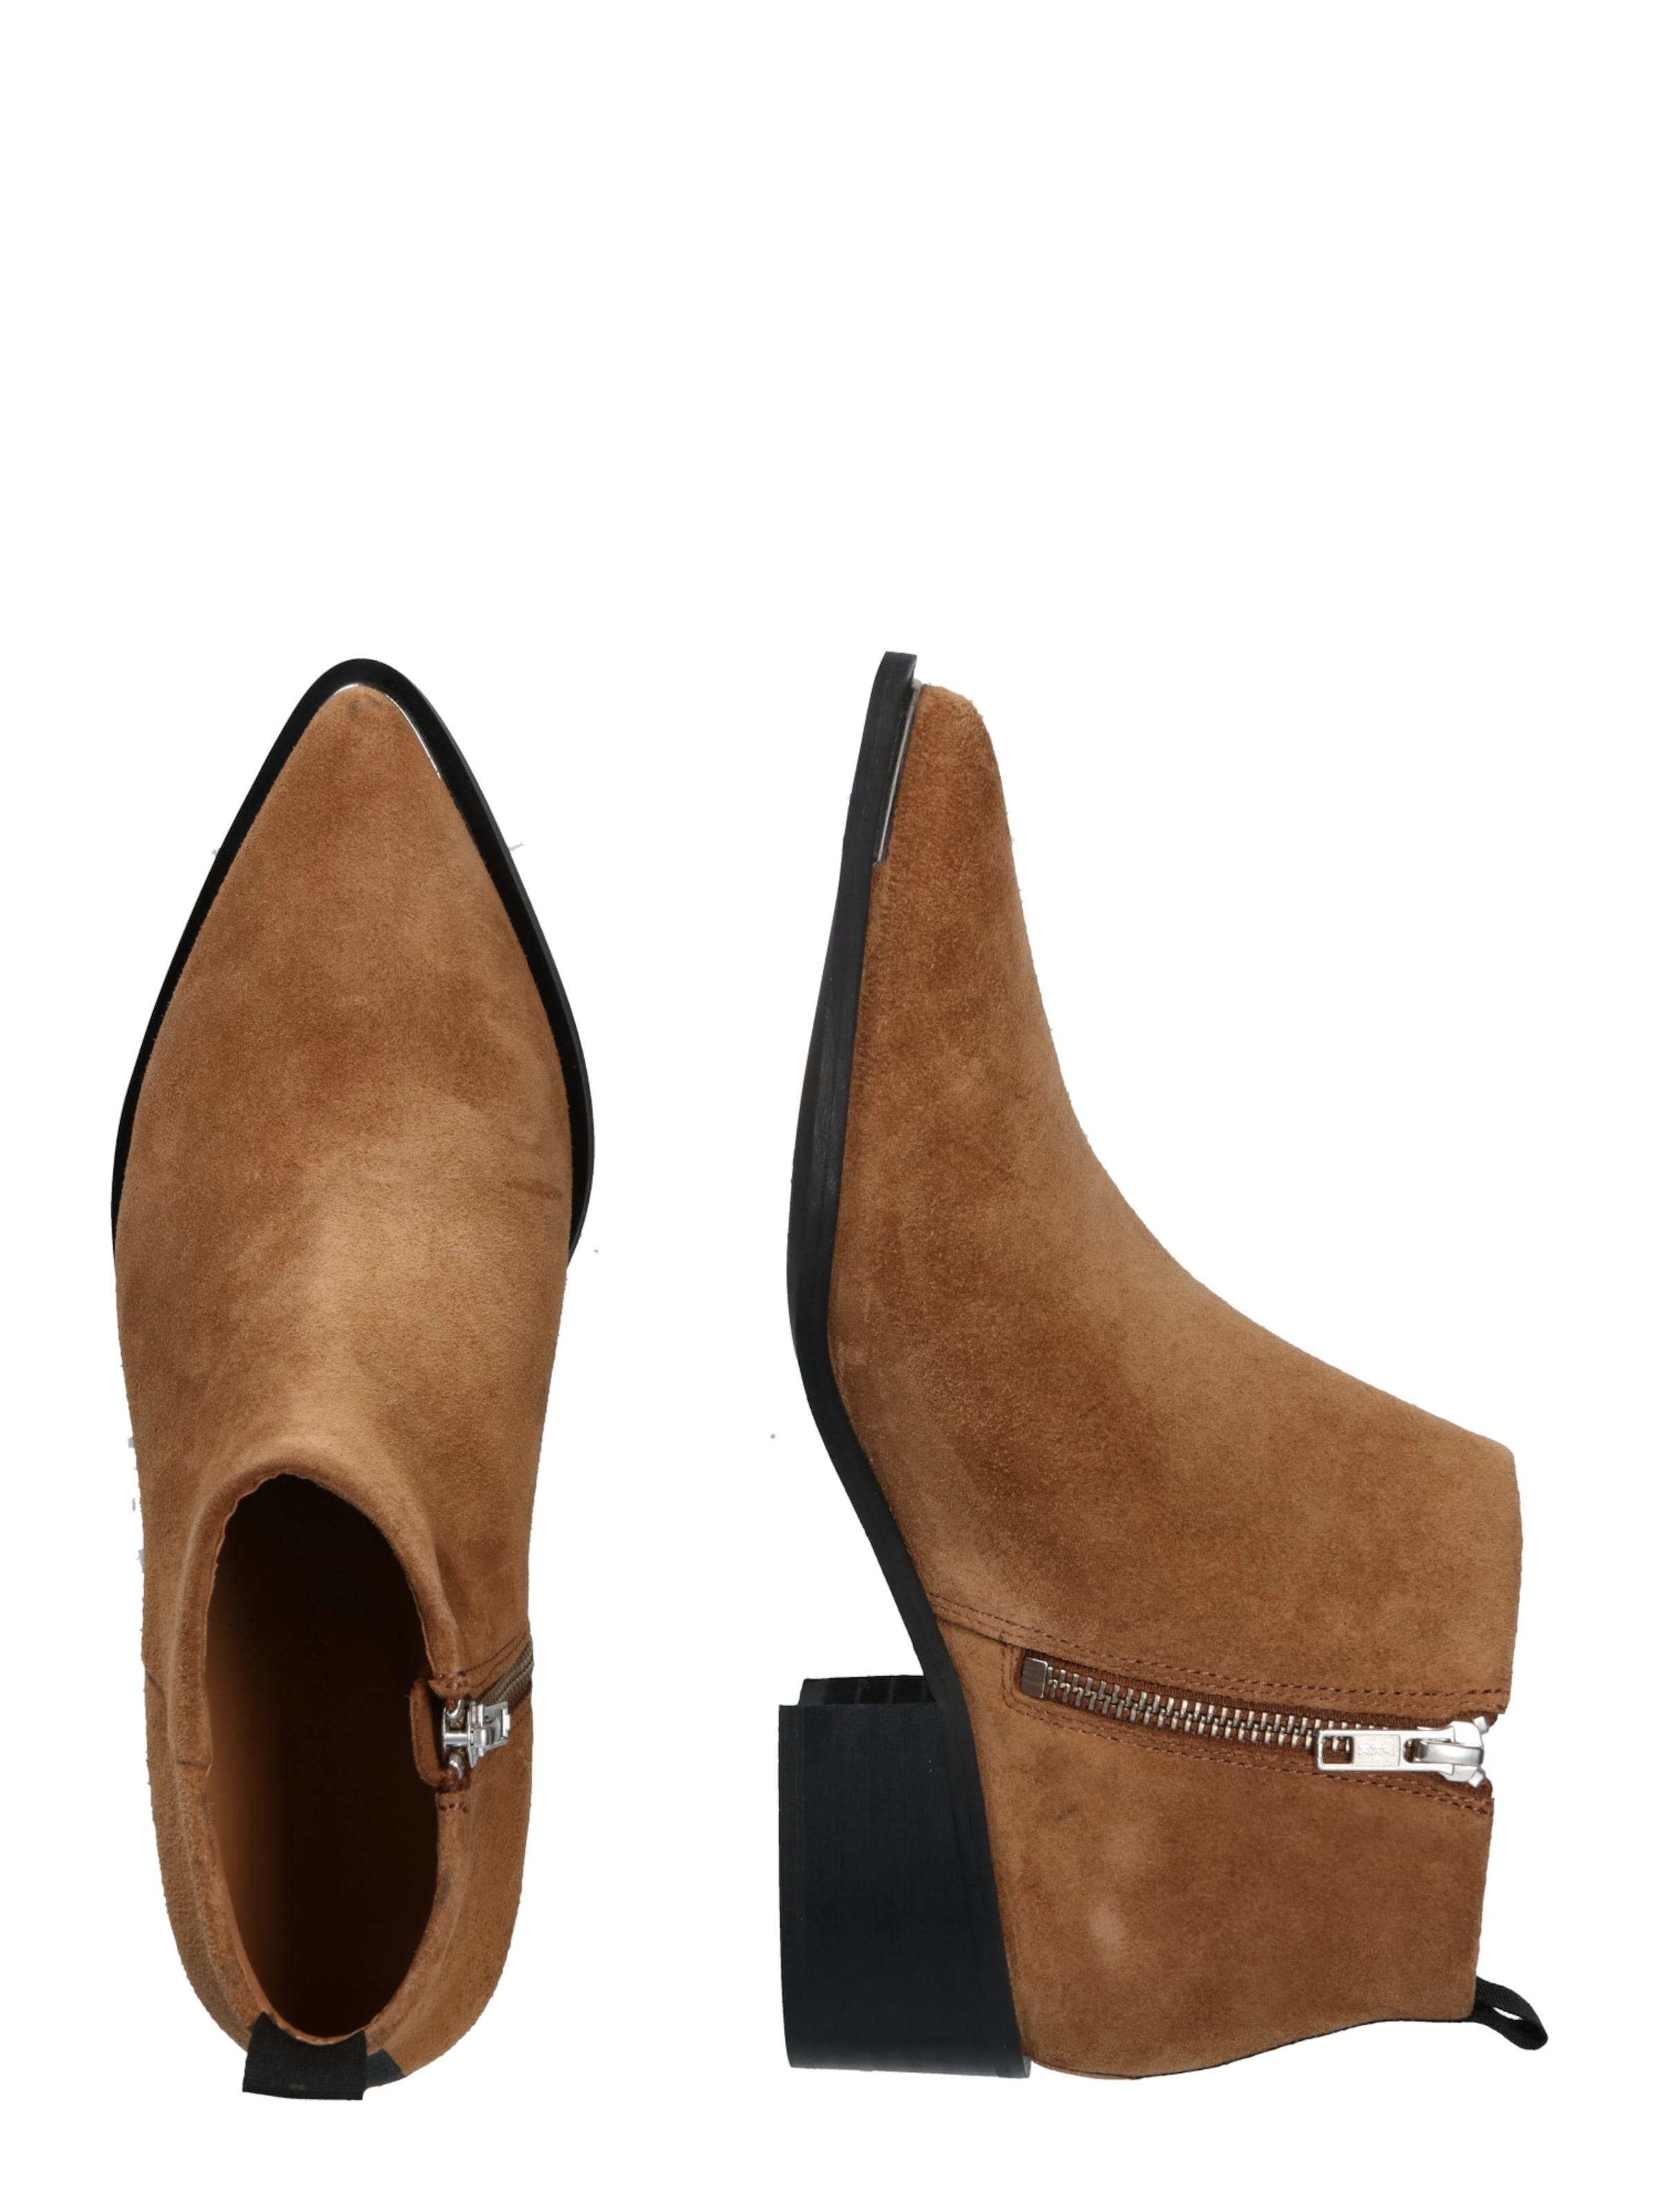 Samsoeamp; Samsoeamp; Ankle Boots In Braun Boots Ankle In 2I9YWEDH